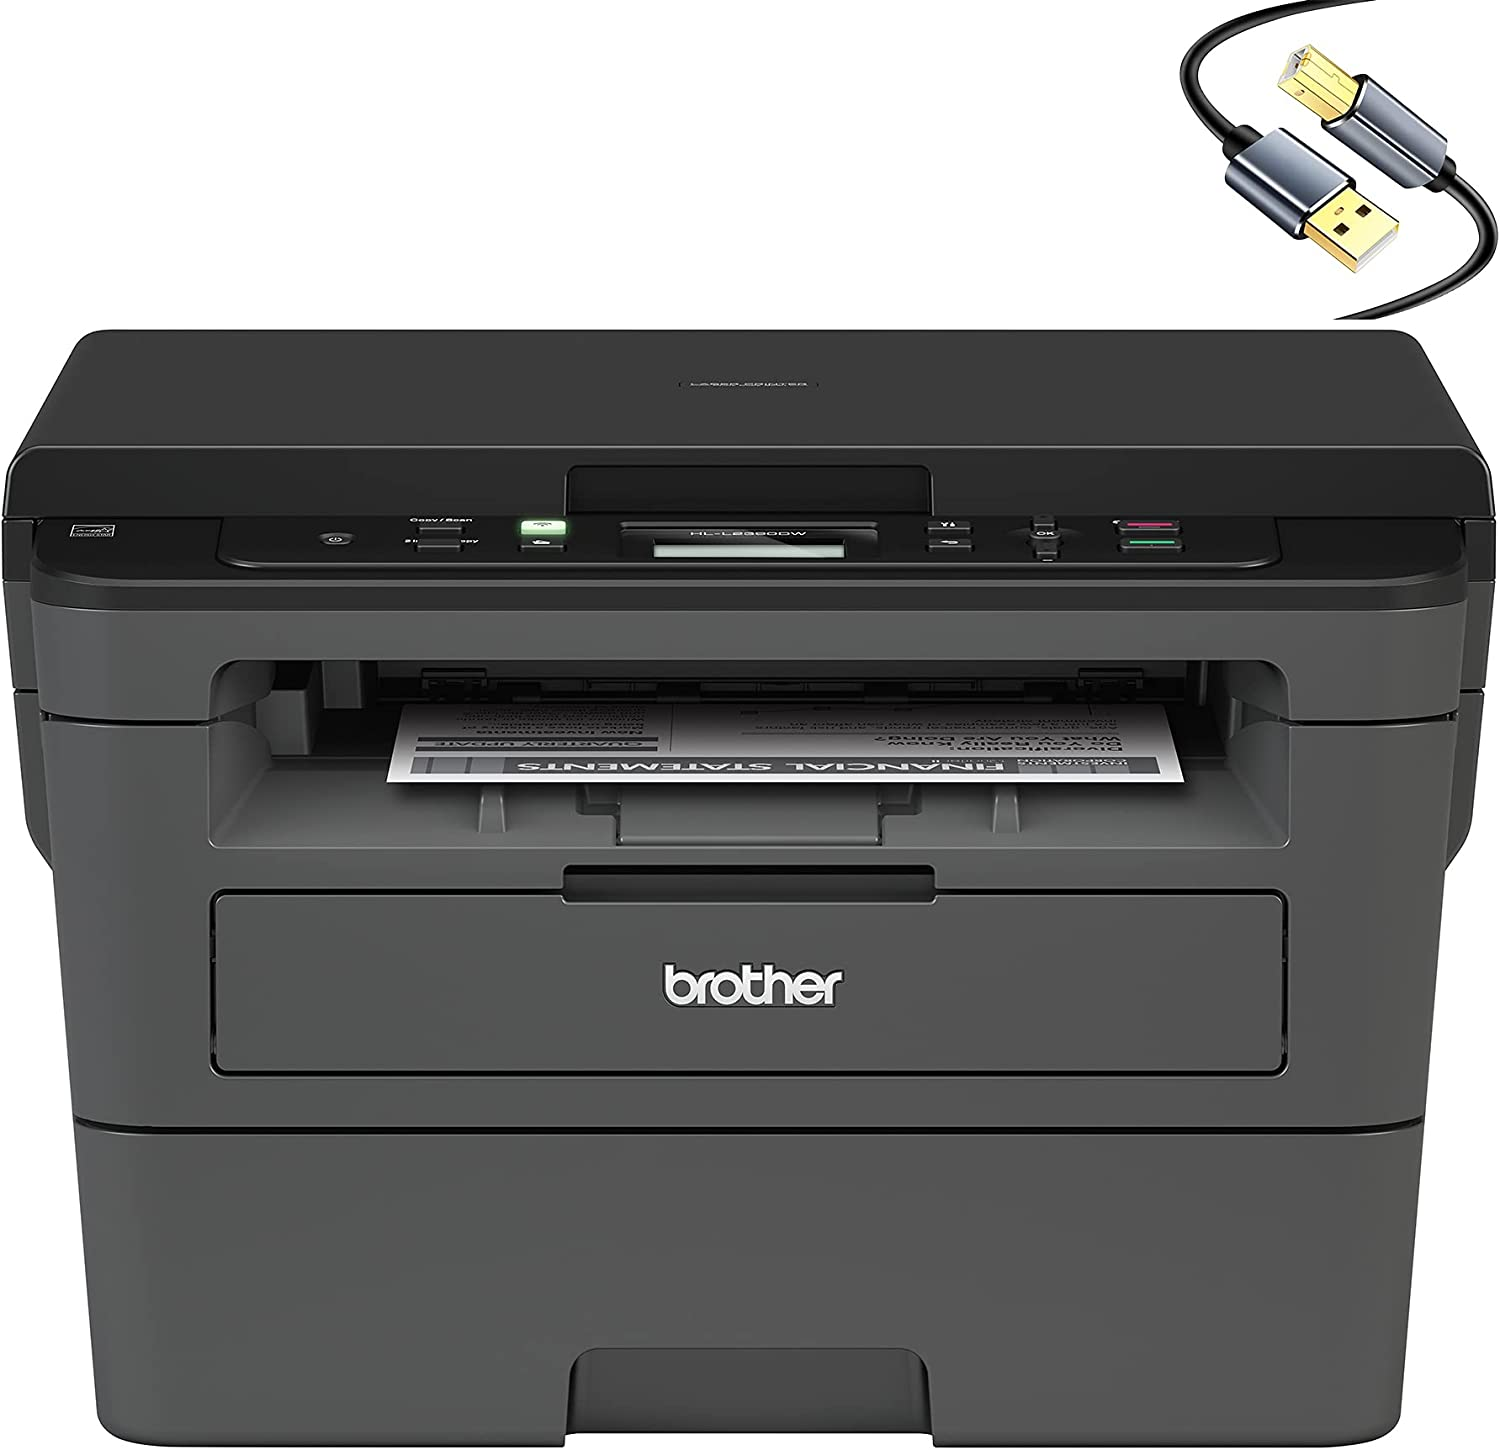 Brother Compact Monochrome Laser Wireless All-in-One Printer HL-L2390D for Business Office - Flatbed Print Copy Scan - 32ppm Print Speed, Duplex Two-Sided Print, 250-Sheet, Tillsiy USB Printer Cable